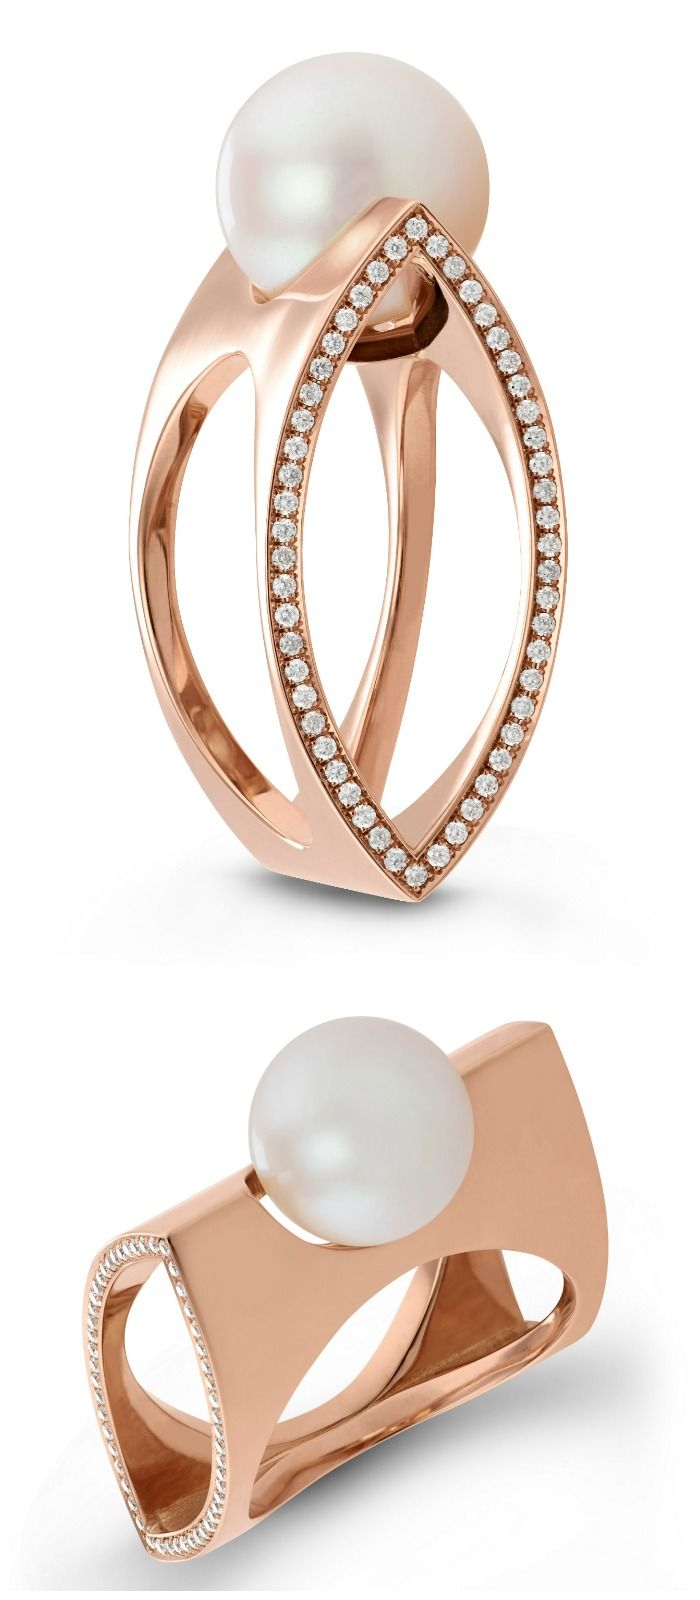 18k Rose Gold And Cultured Pearl Ring With Diamonds By Beolli For Vitae  Ascendere